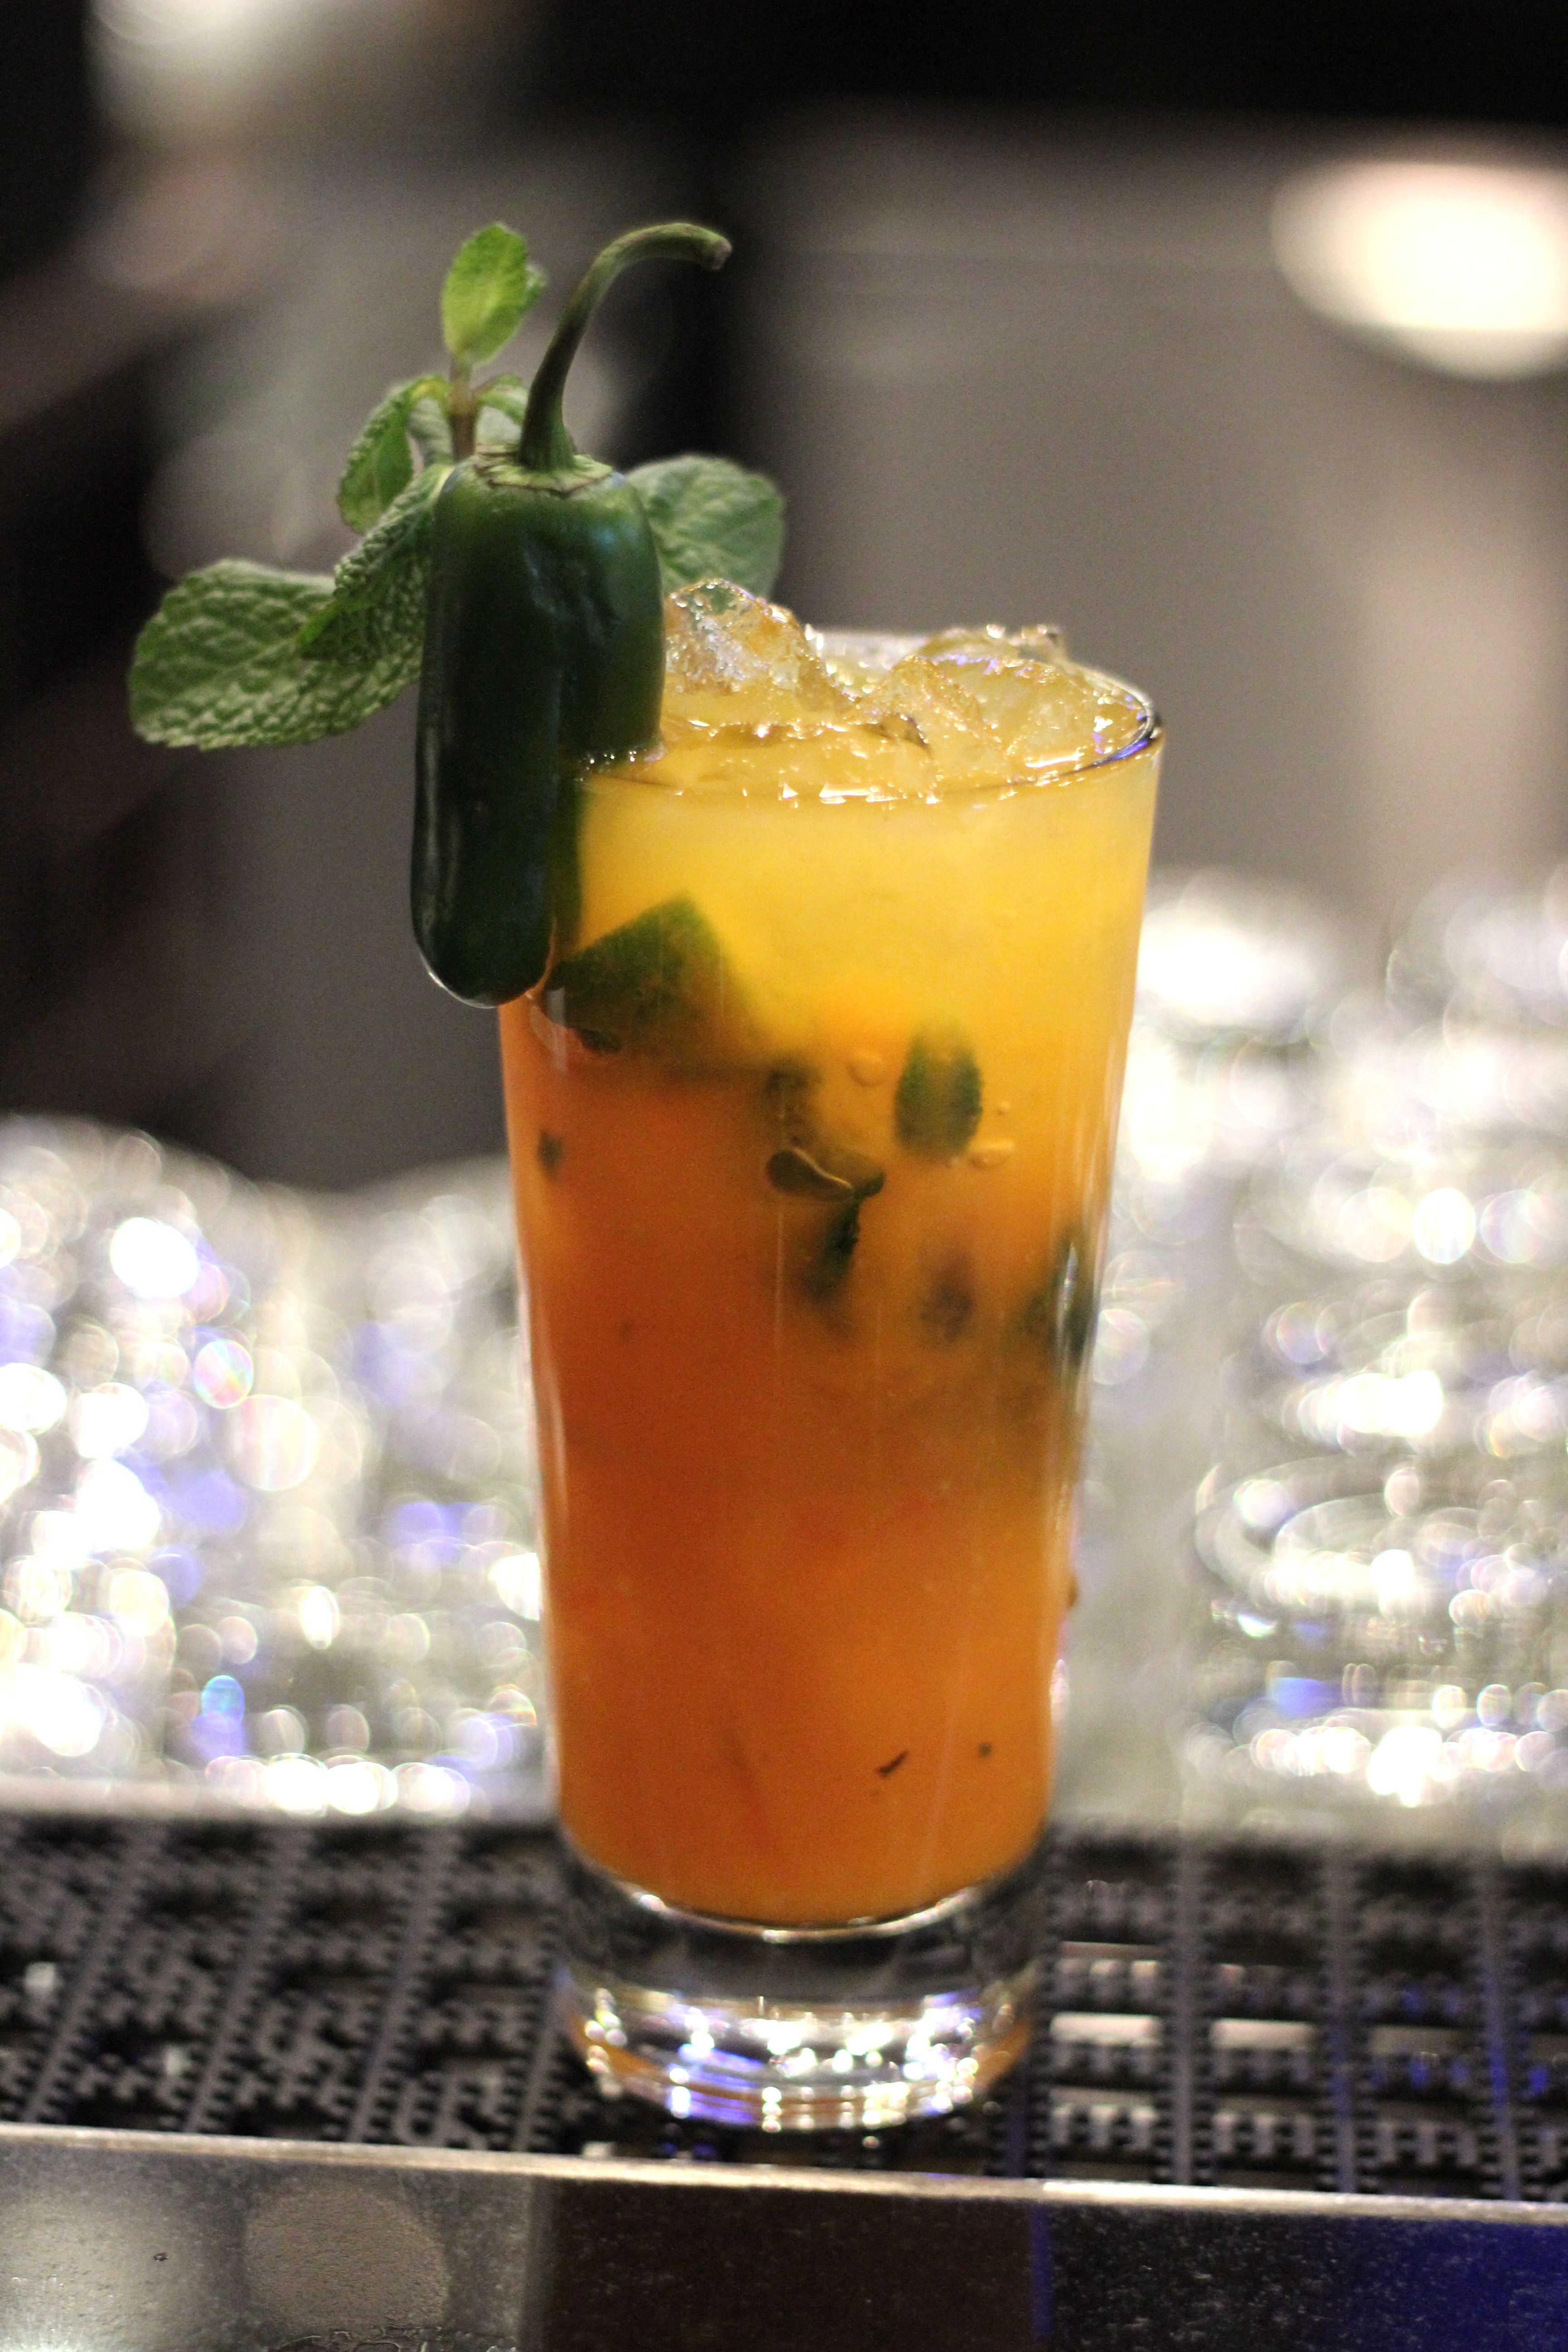 A Sassy Sidekick To Any Legendary Burger Our Spicy Mango Mojito Made With Mint Leaves Cubed Limes Sliced Jalapenos Sugar Syrup Mixed With Mango Purree